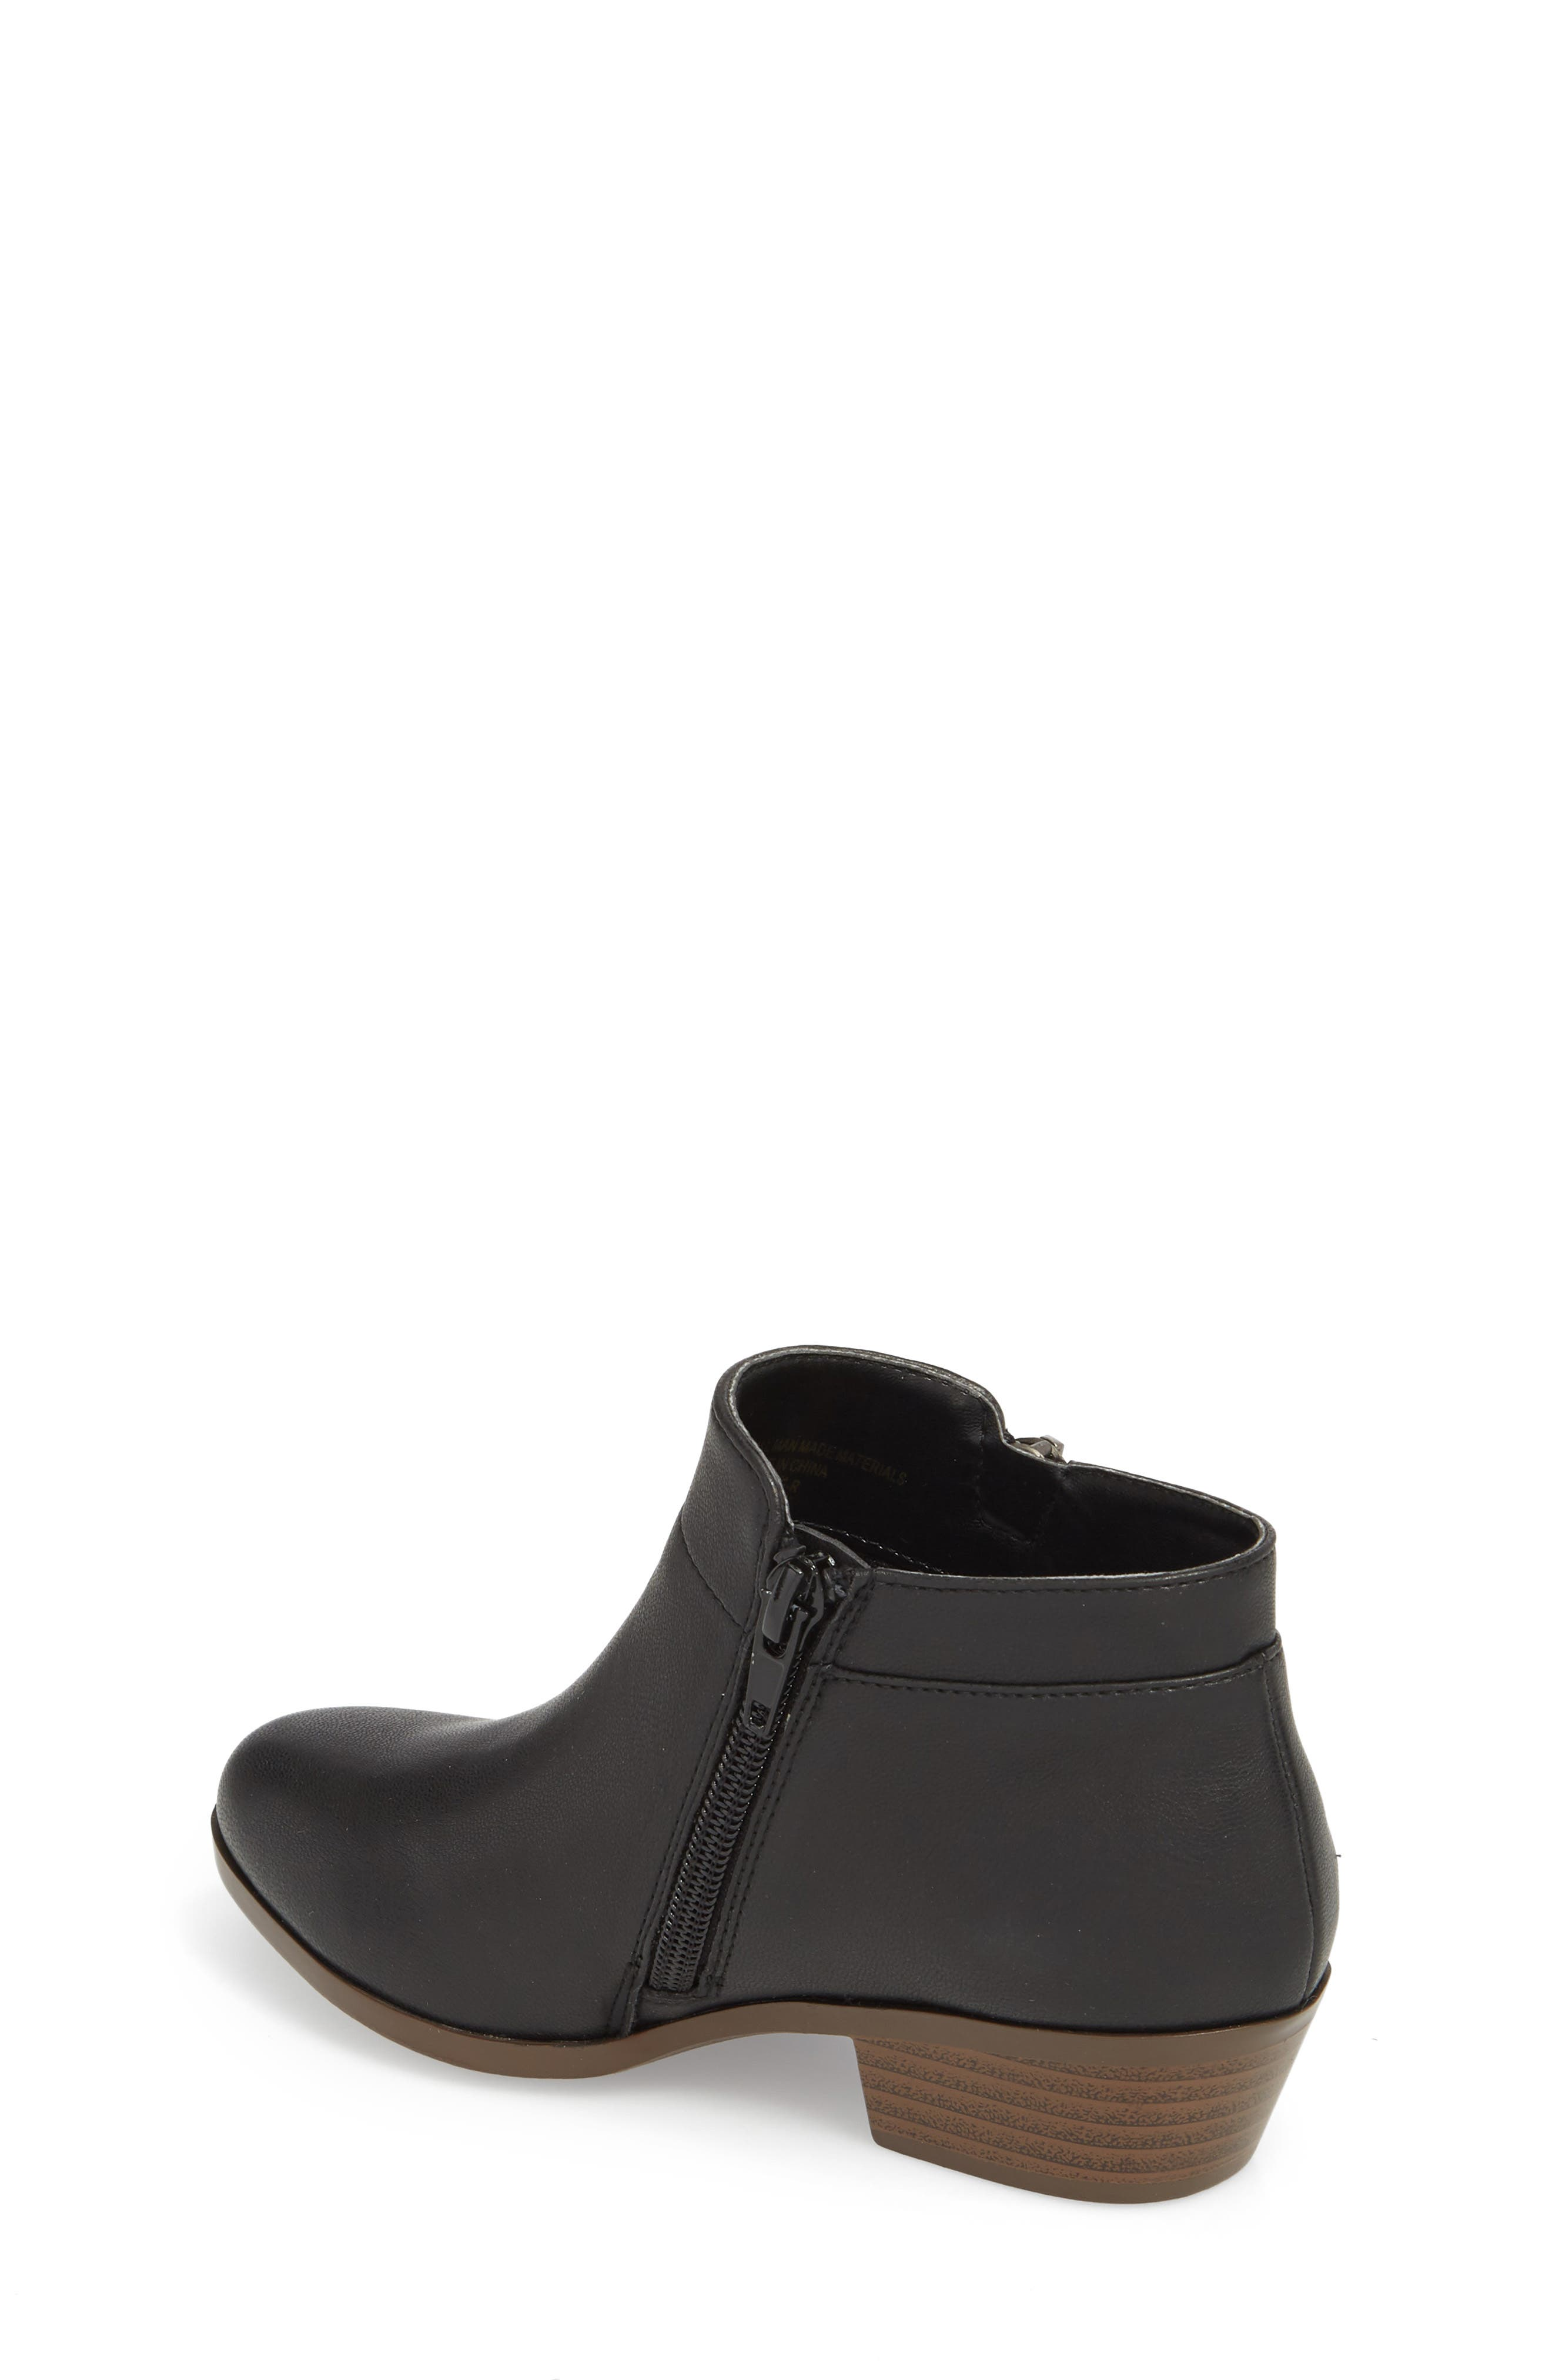 Petty Packer Bootie,                             Alternate thumbnail 2, color,                             BLACK